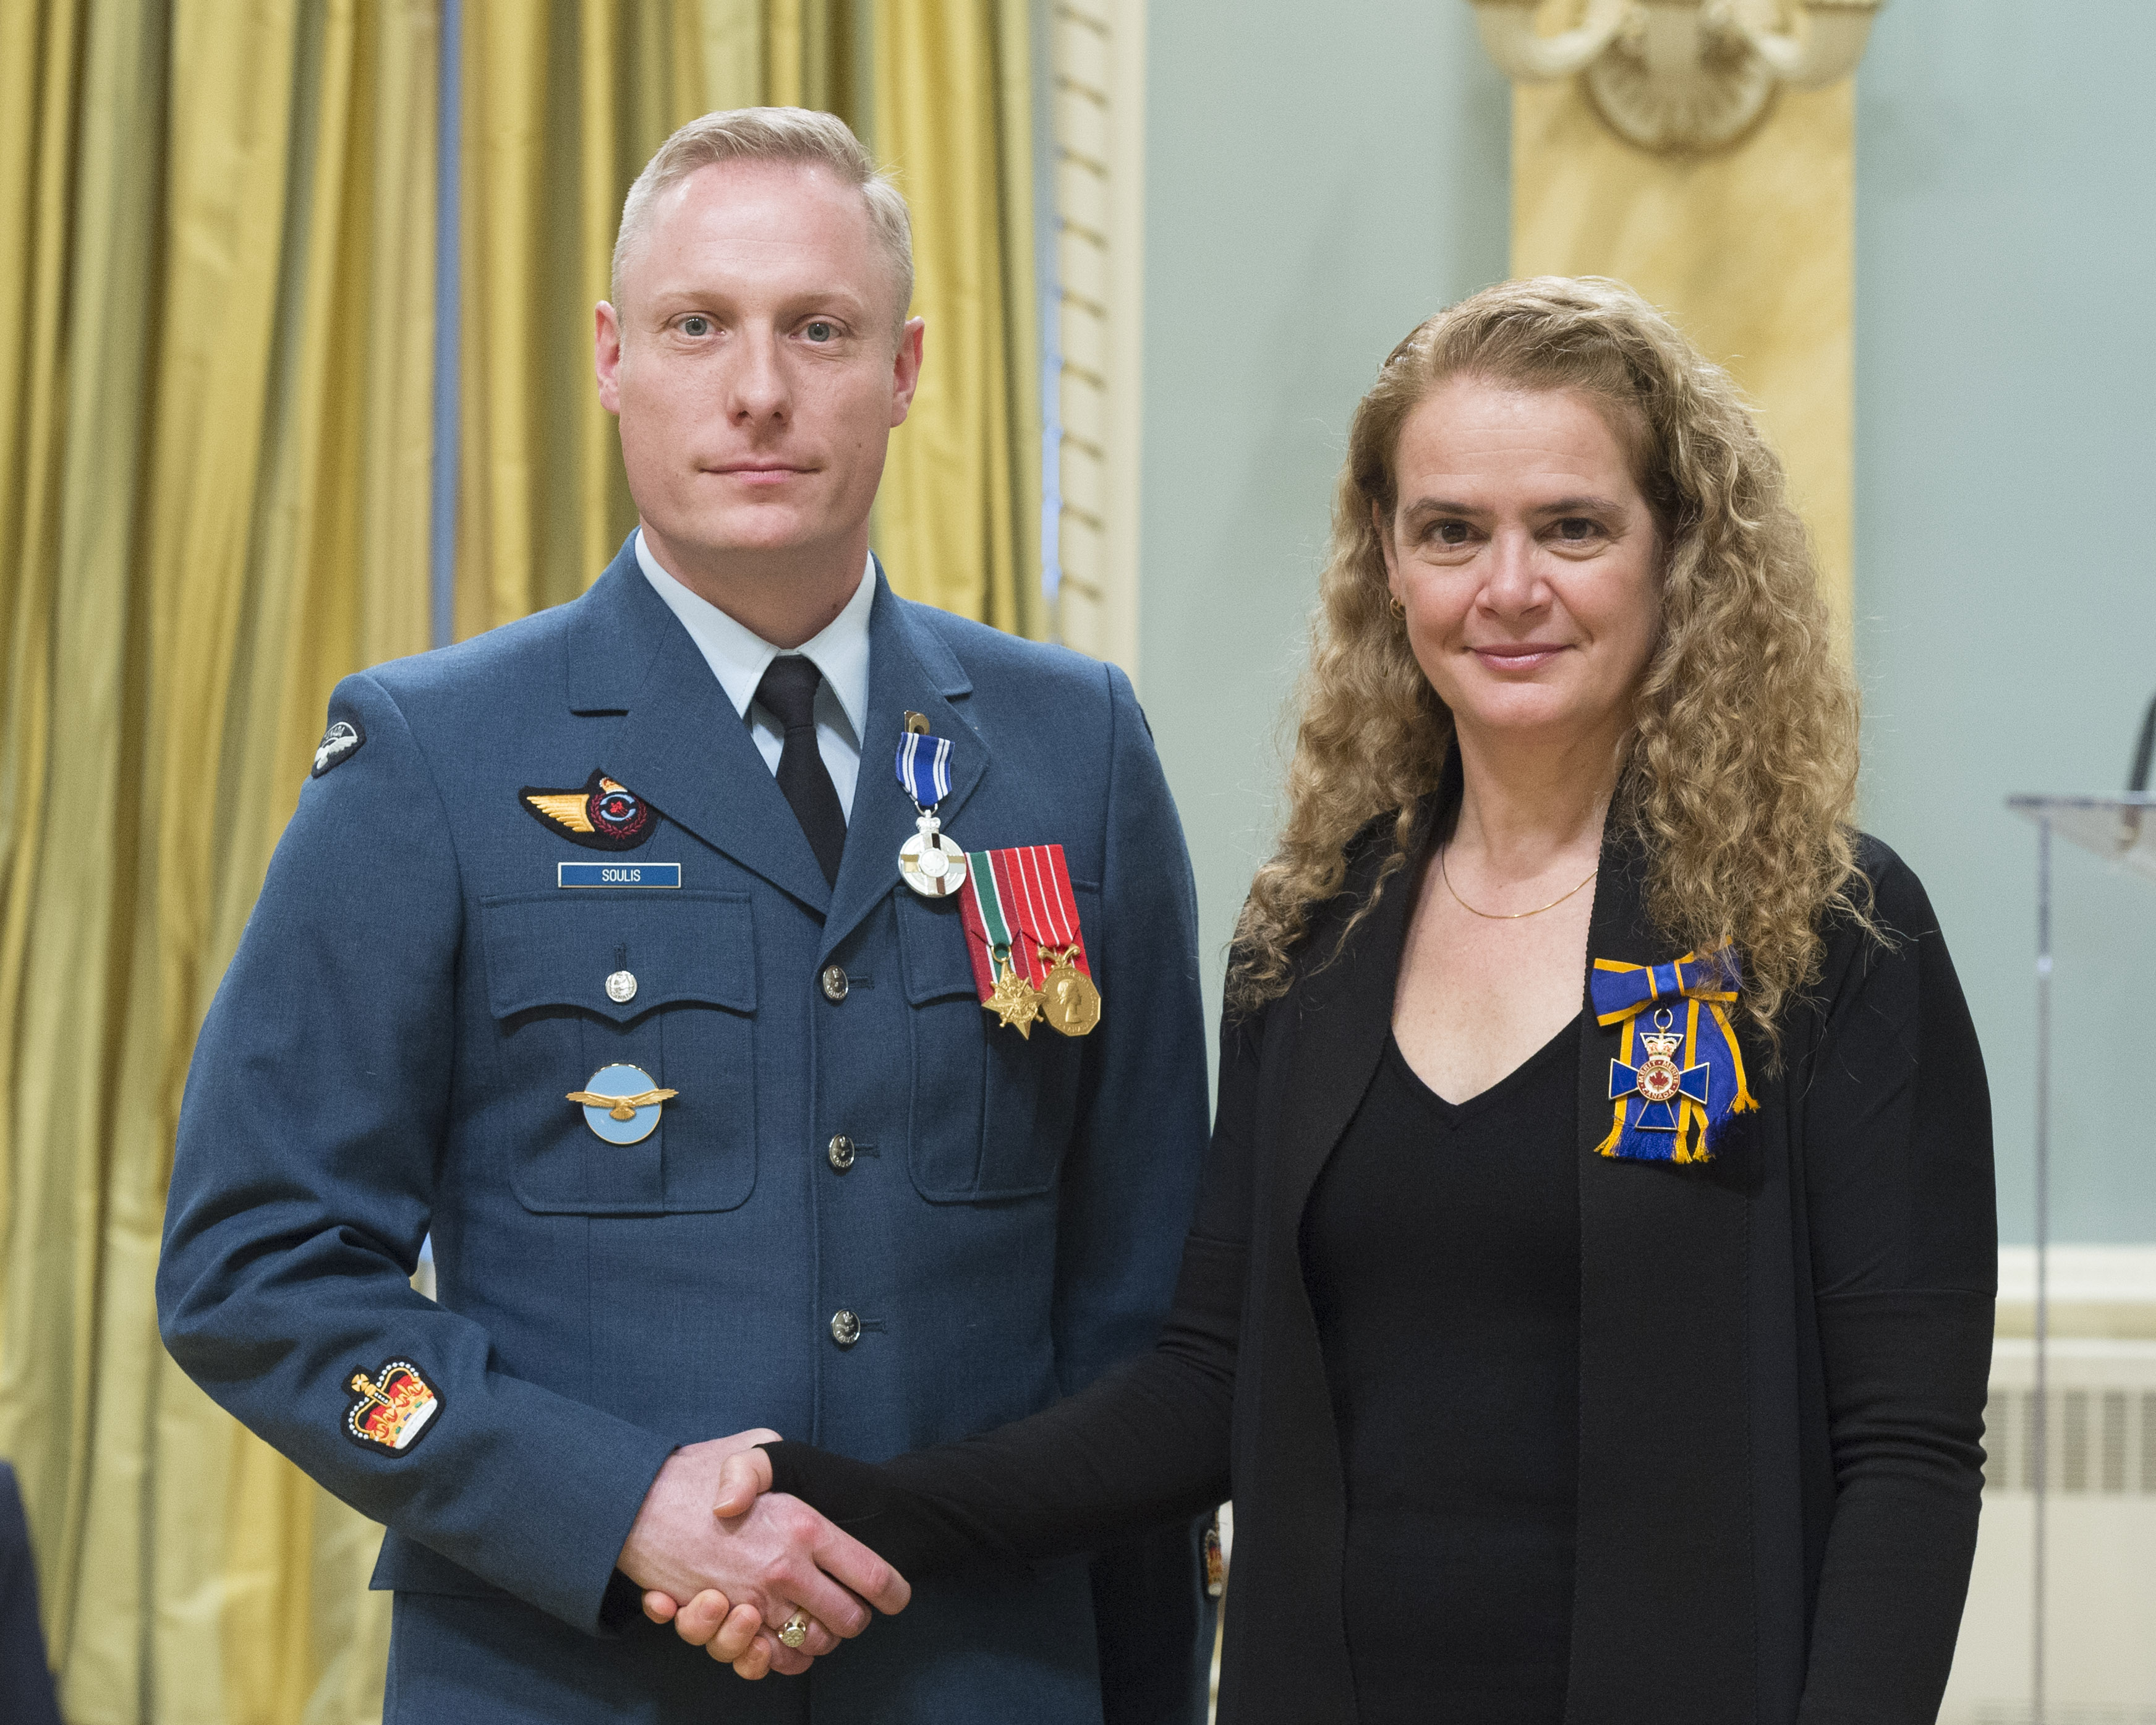 Sergeant Nicolaas Soulis receives the Meritorious Service Medal (Military Division) from Governor General and Commander-in-Chief of Canada Julie Payette on February 28, 2018. PHOTO: Sergeant Johanie Maheu, OSGG, GG05-2018-0066-048